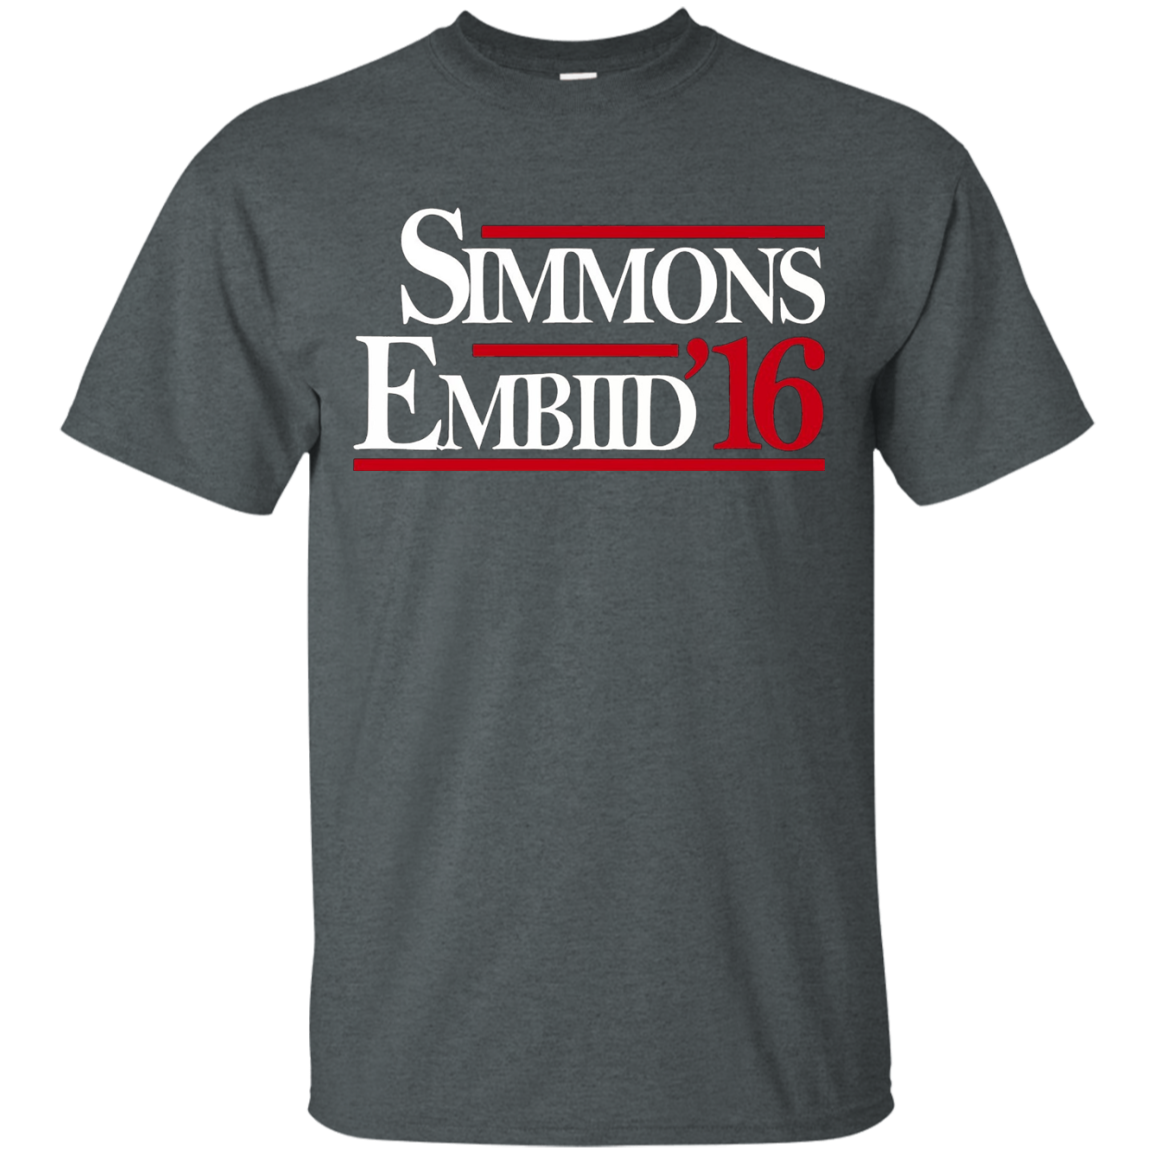 Simmons Embiid 16 shirt